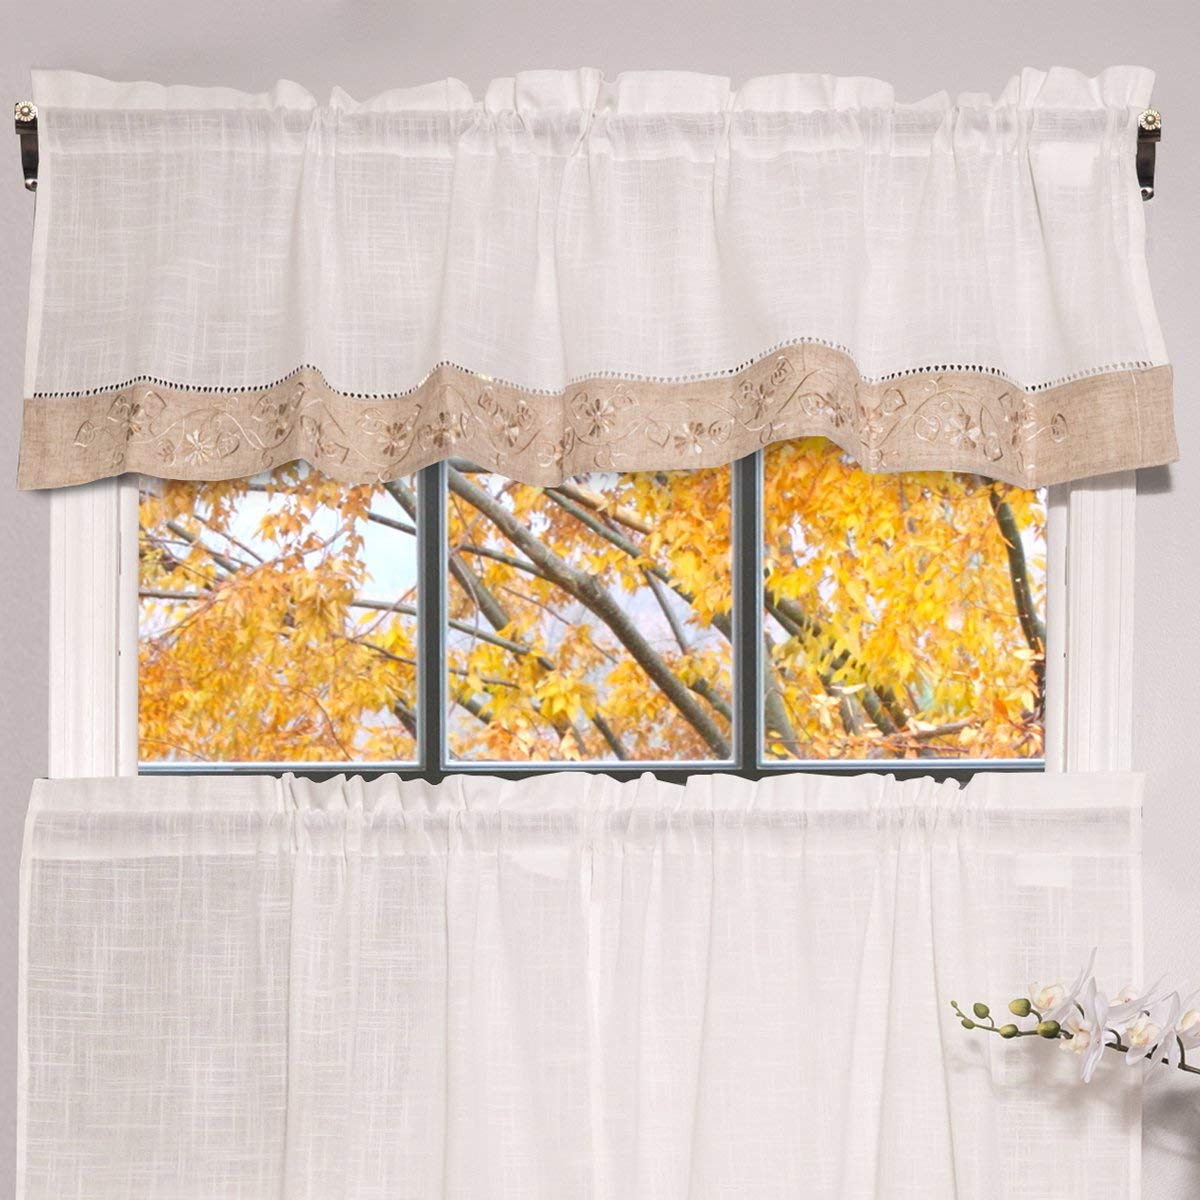 Oakwood Linen Style Decorative Curtain Tier Sets With Regard To 2021 Amazon: Bed Bath N More Oakwood Linen Style Decorative (View 16 of 20)